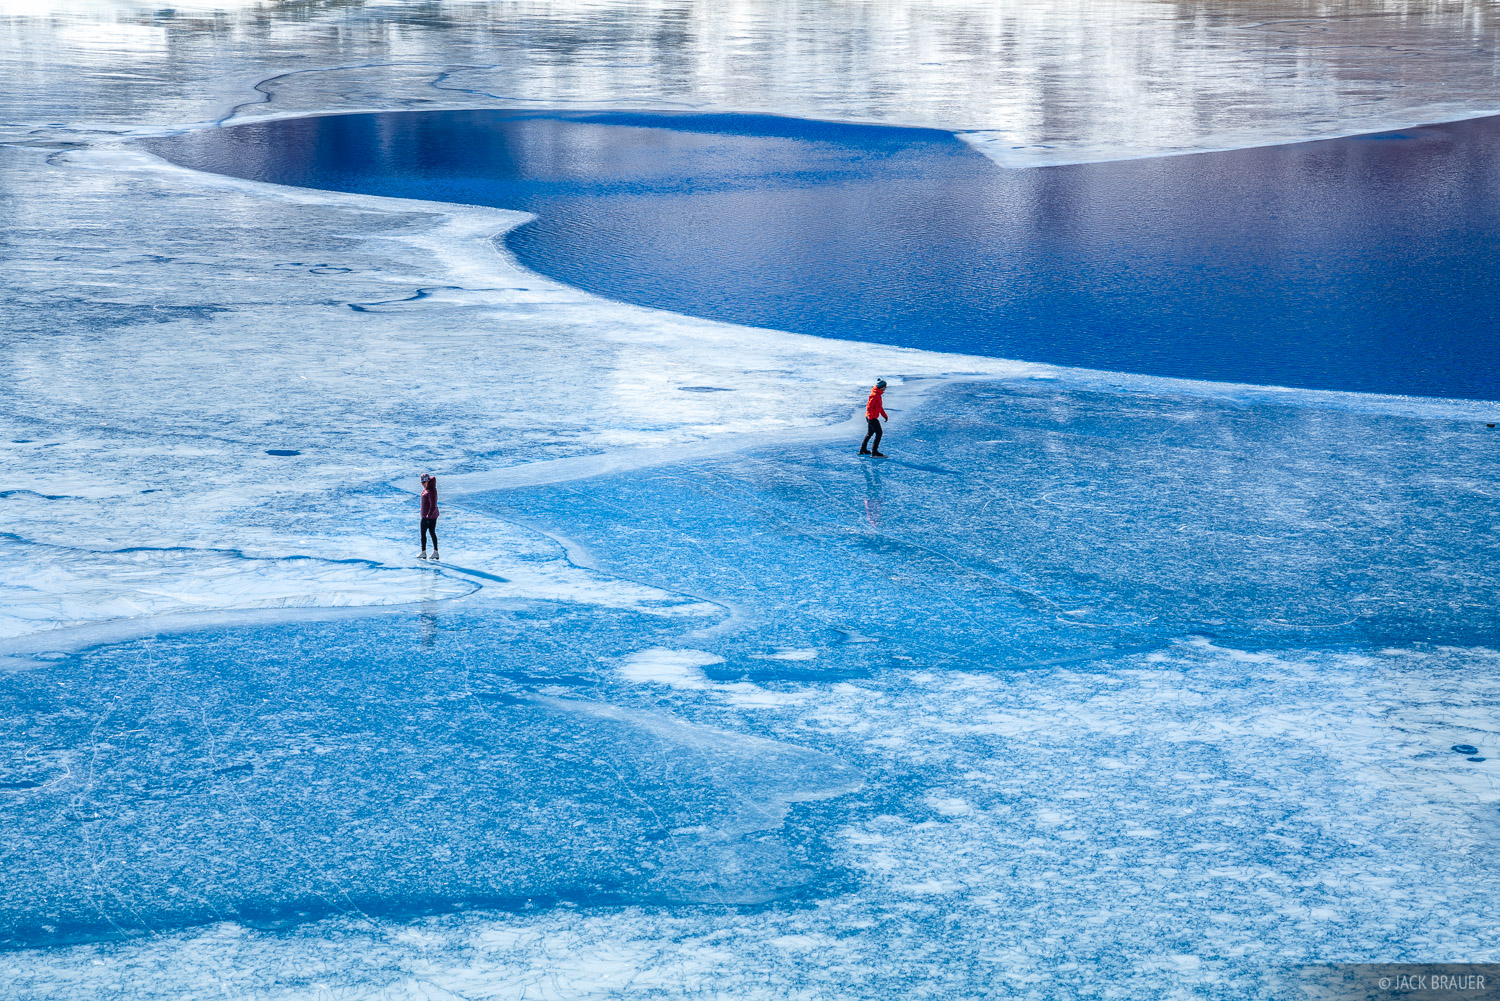 Colorado, Ice Lakes, San Juan Mountains, ice skate, ice skating, November, photo